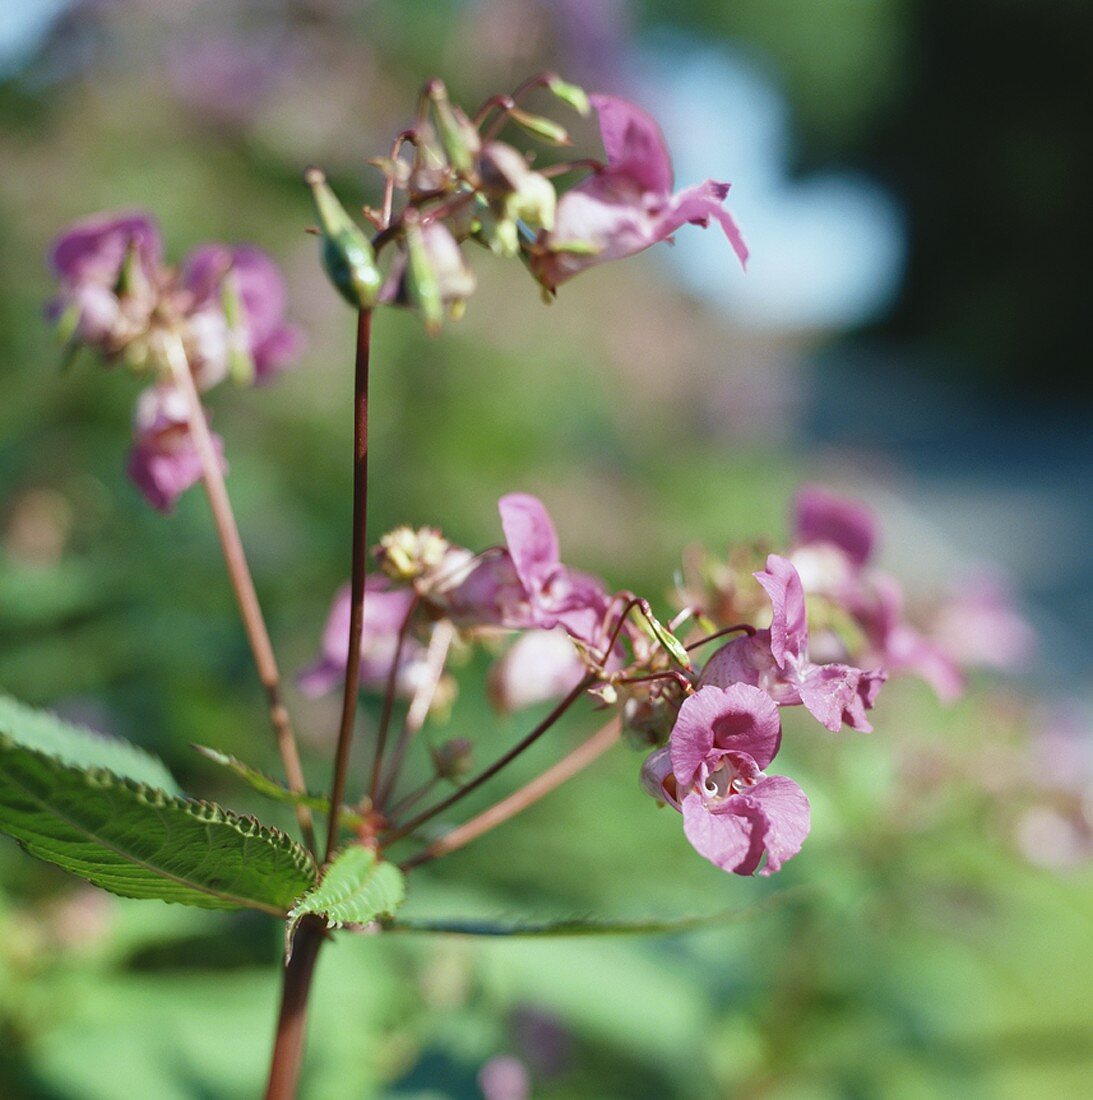 Himalayan or Indian balsam (Impatiens, Bach flowers ingredient)